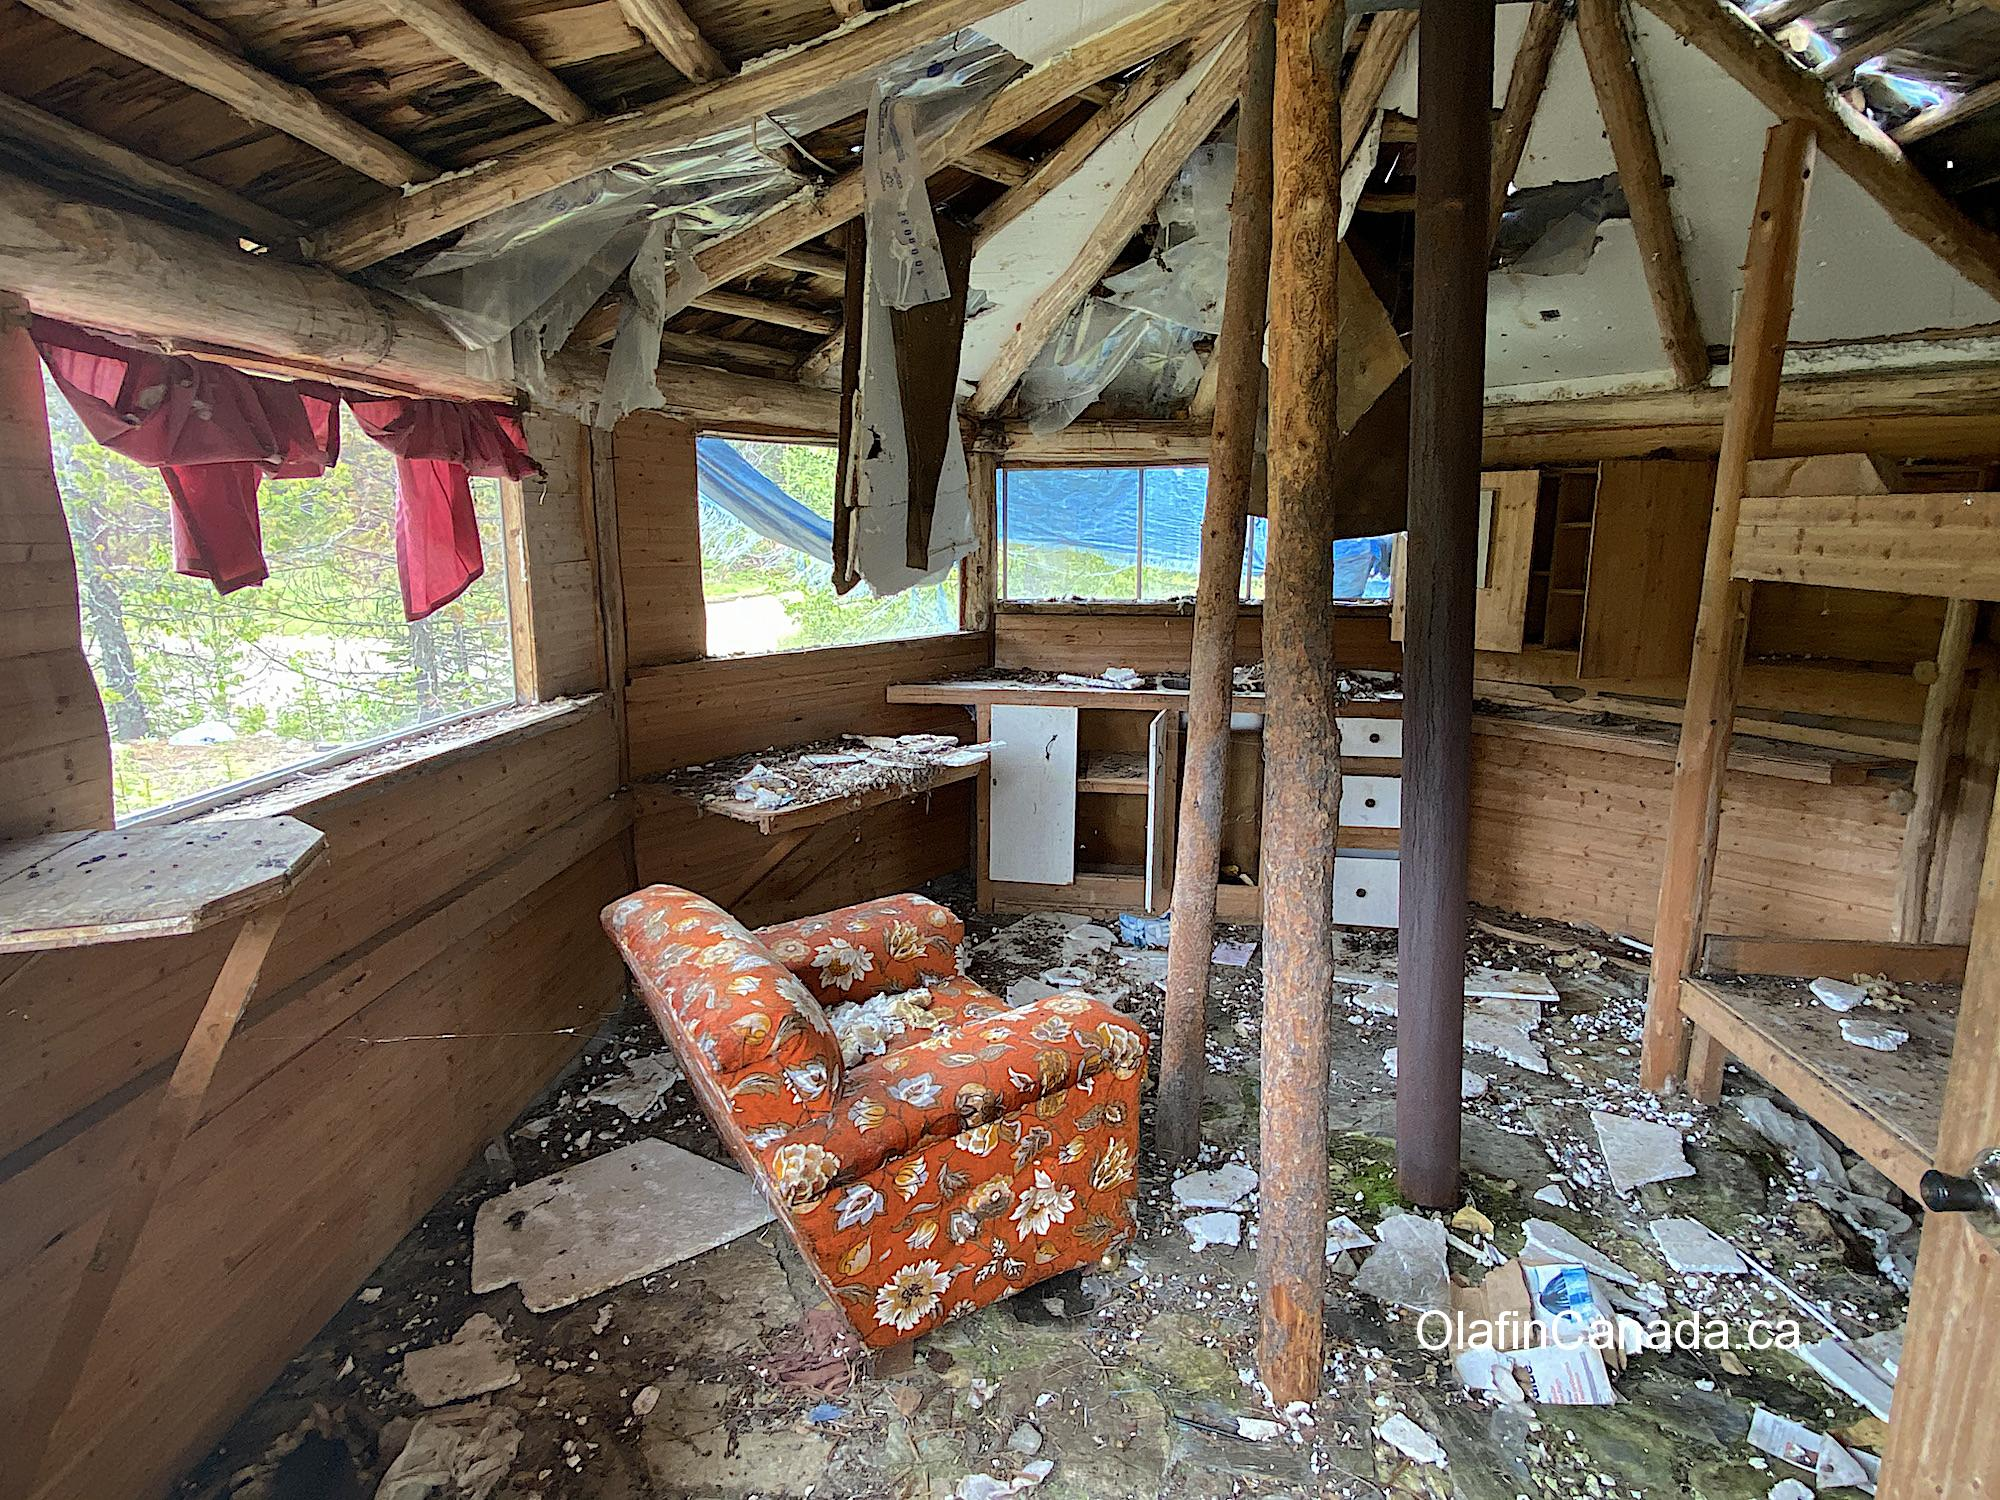 Interior of cabin with old chair at Comet Creek Resort in the Cariboo between Likely and Barkerville #olafincanada #britishcolumbia #discoverbc #abandonedbc #cariboo #cometcreekresort